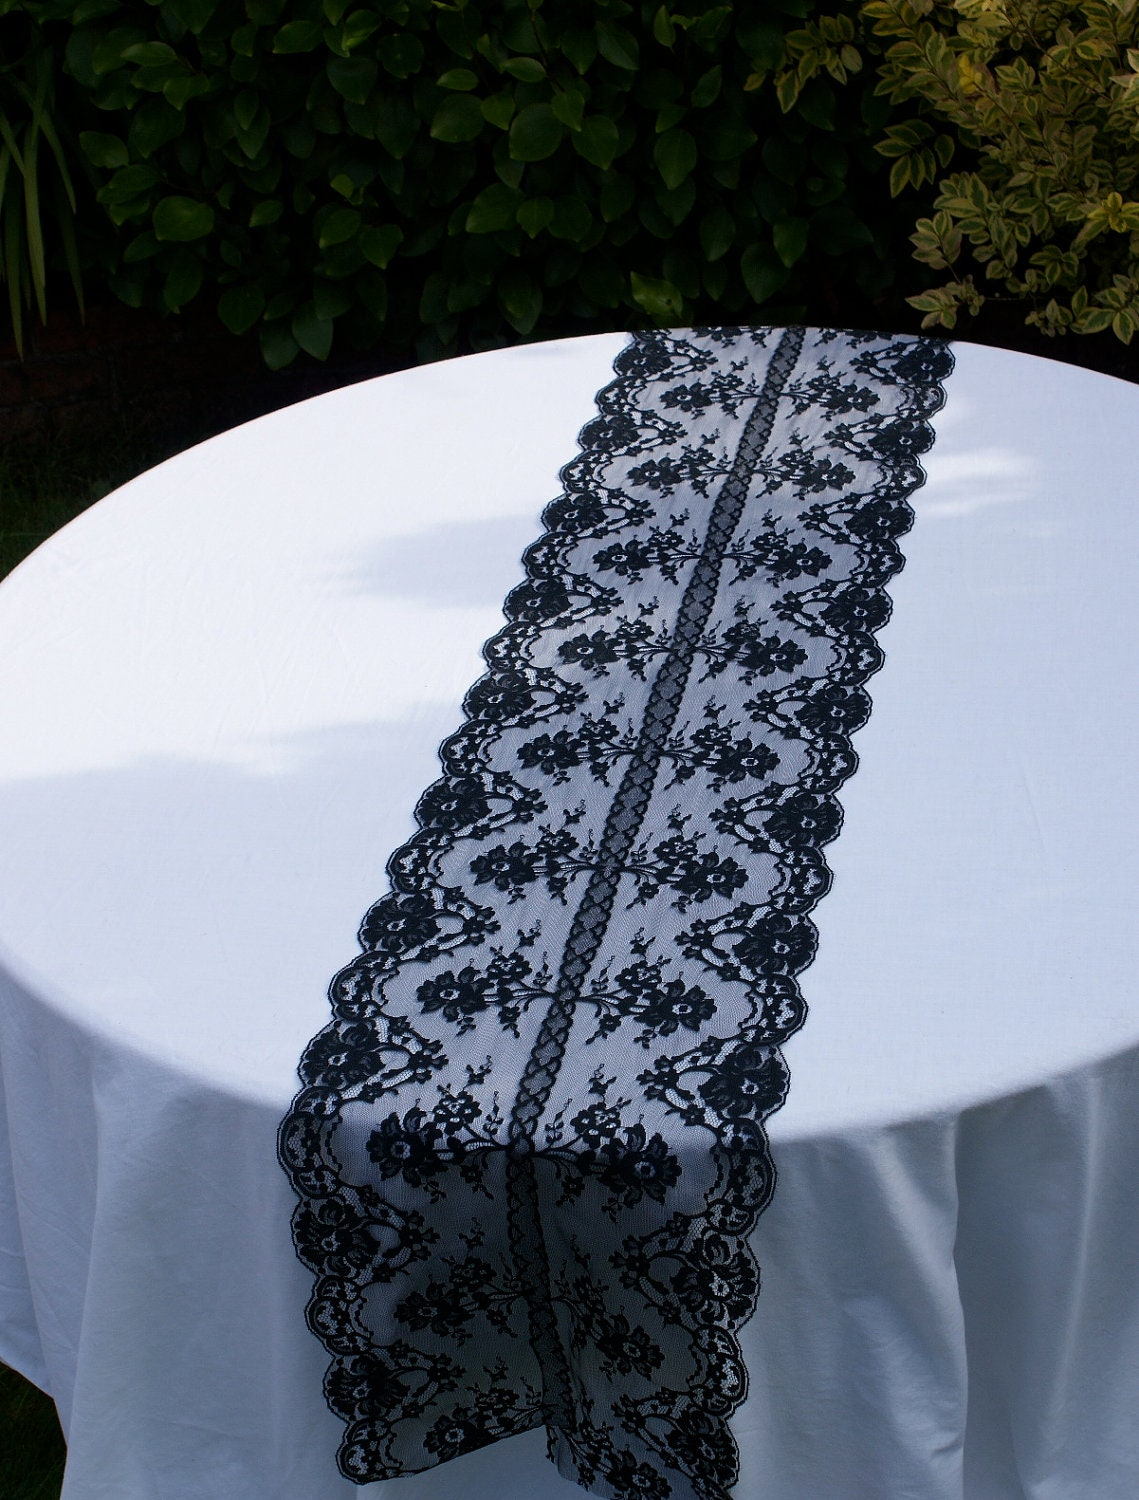 Black lace table runner for your special day : ilfullxfull378266169r23y from www.etsy.com size 1139 x 1500 jpeg 362kB